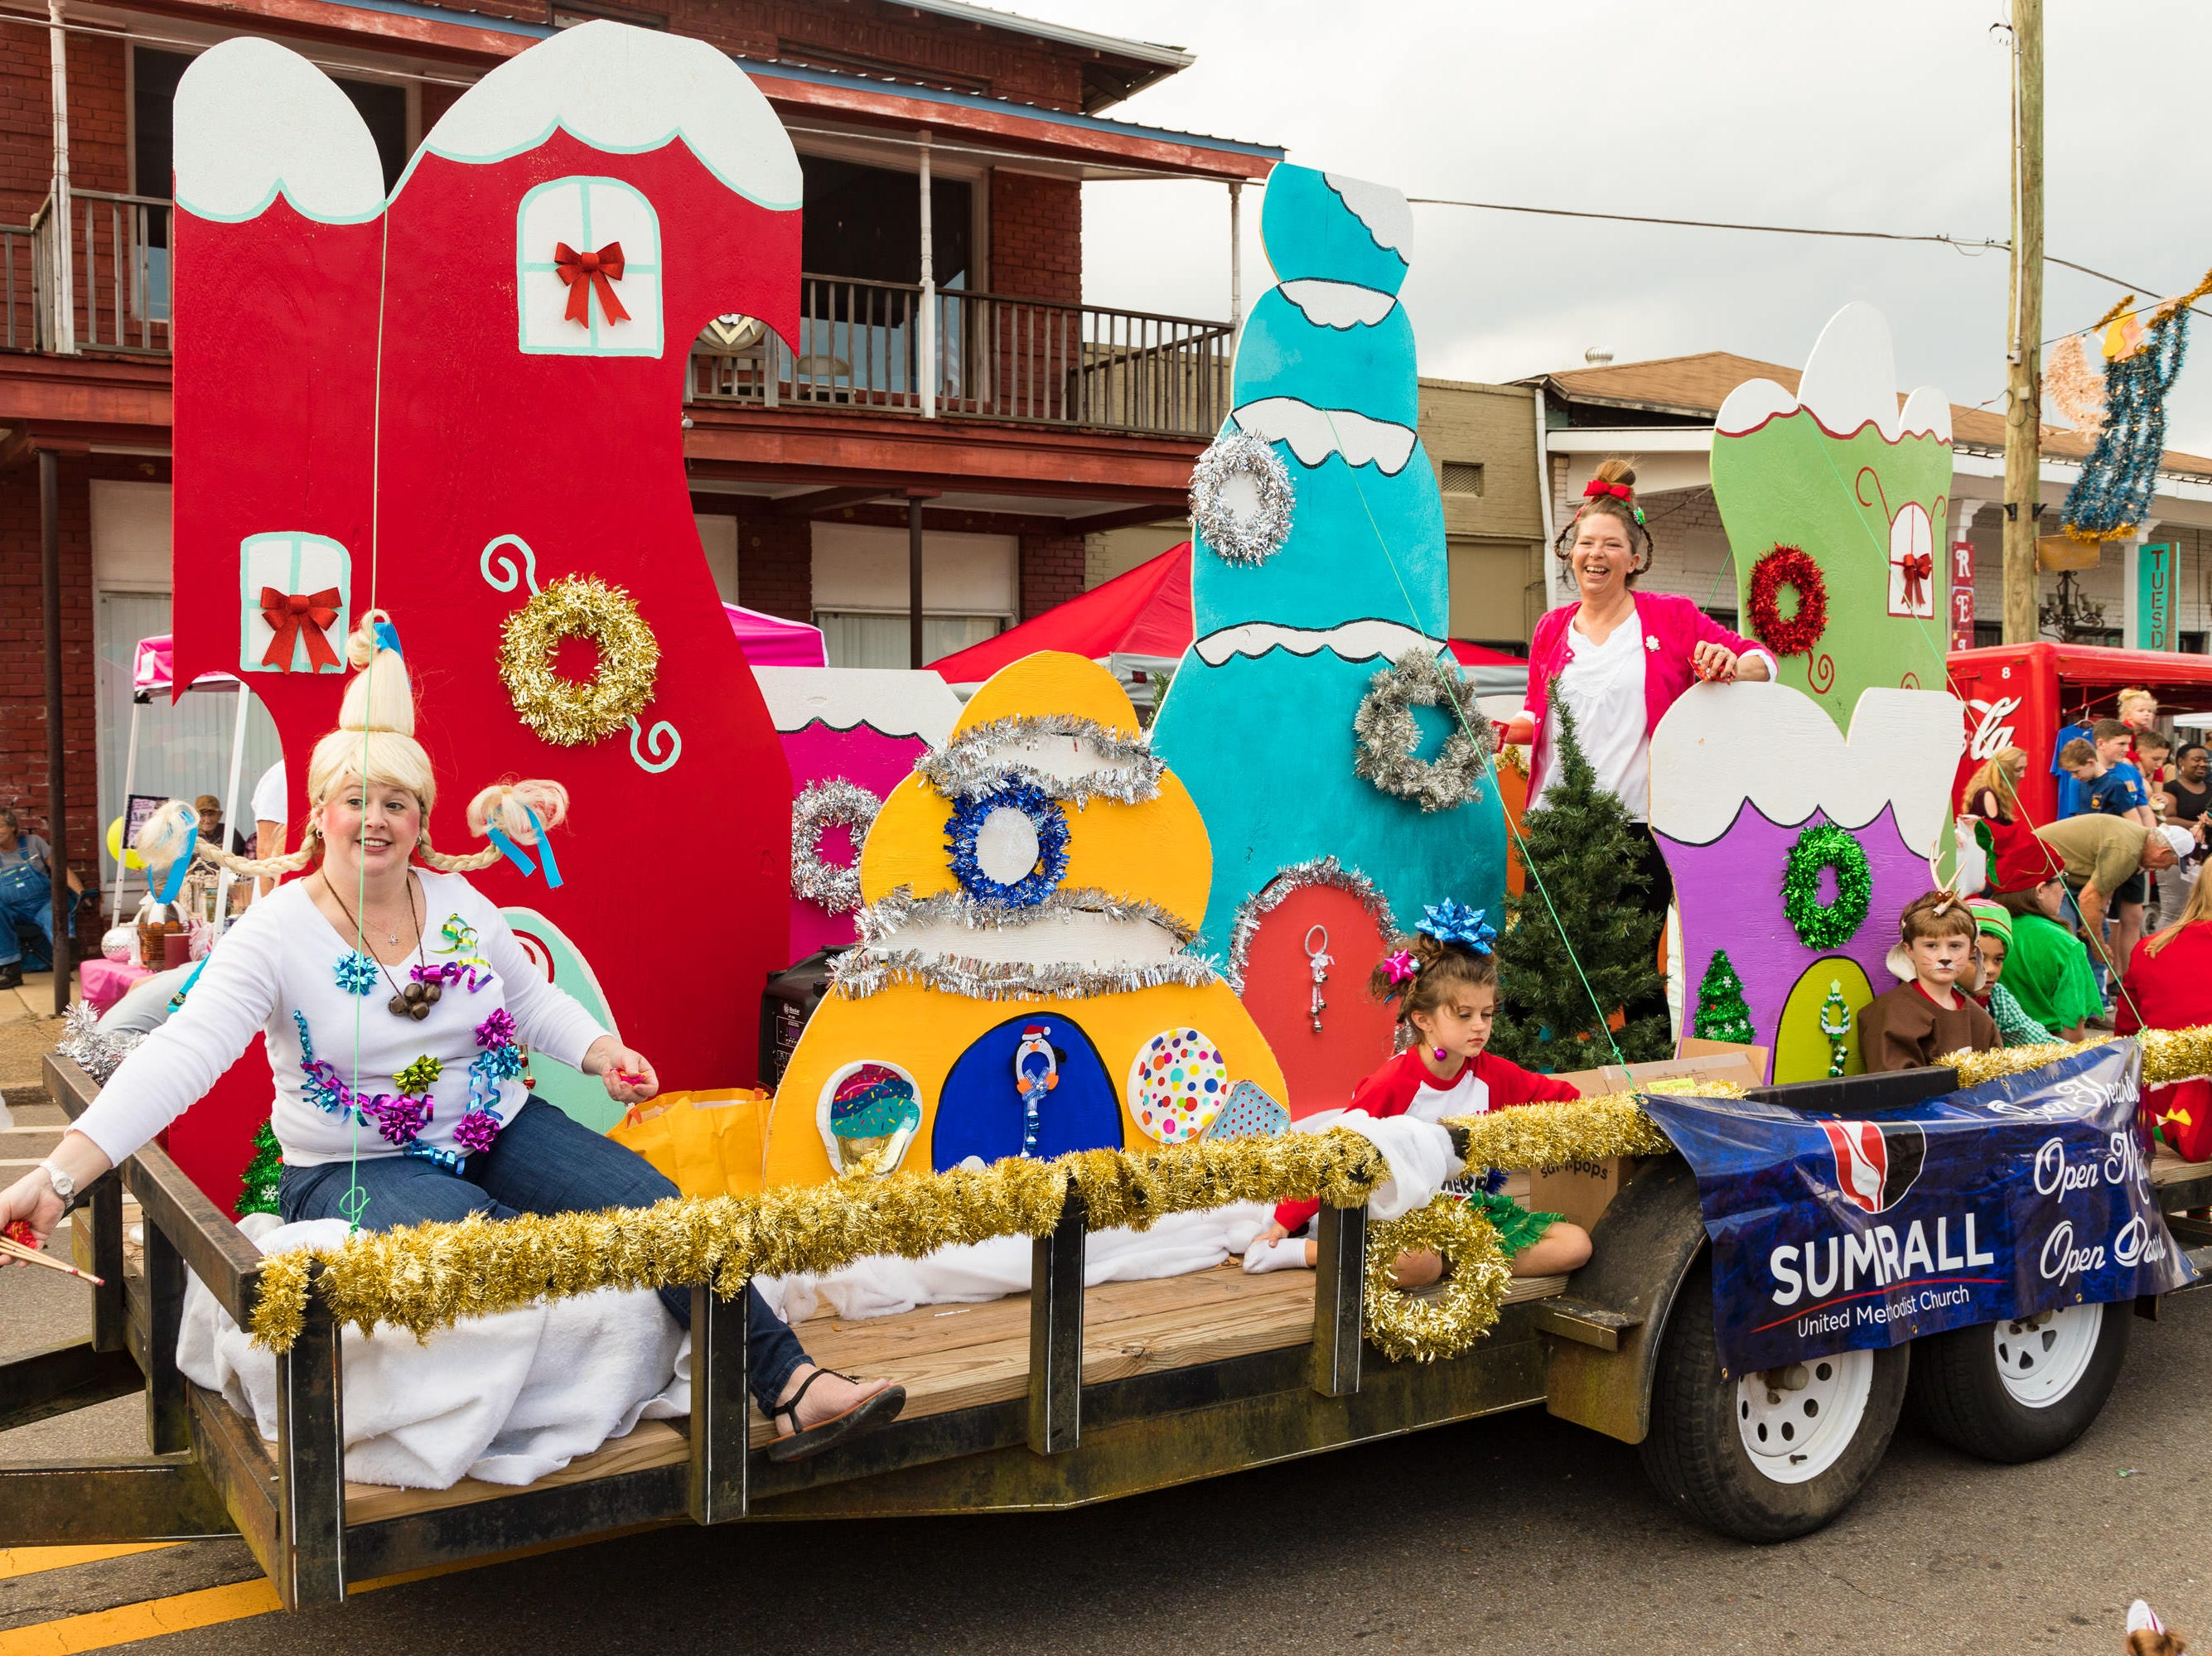 Sumrall United Methodist Church participates in the Christmas Parade on Saturday, December 1, 2018.